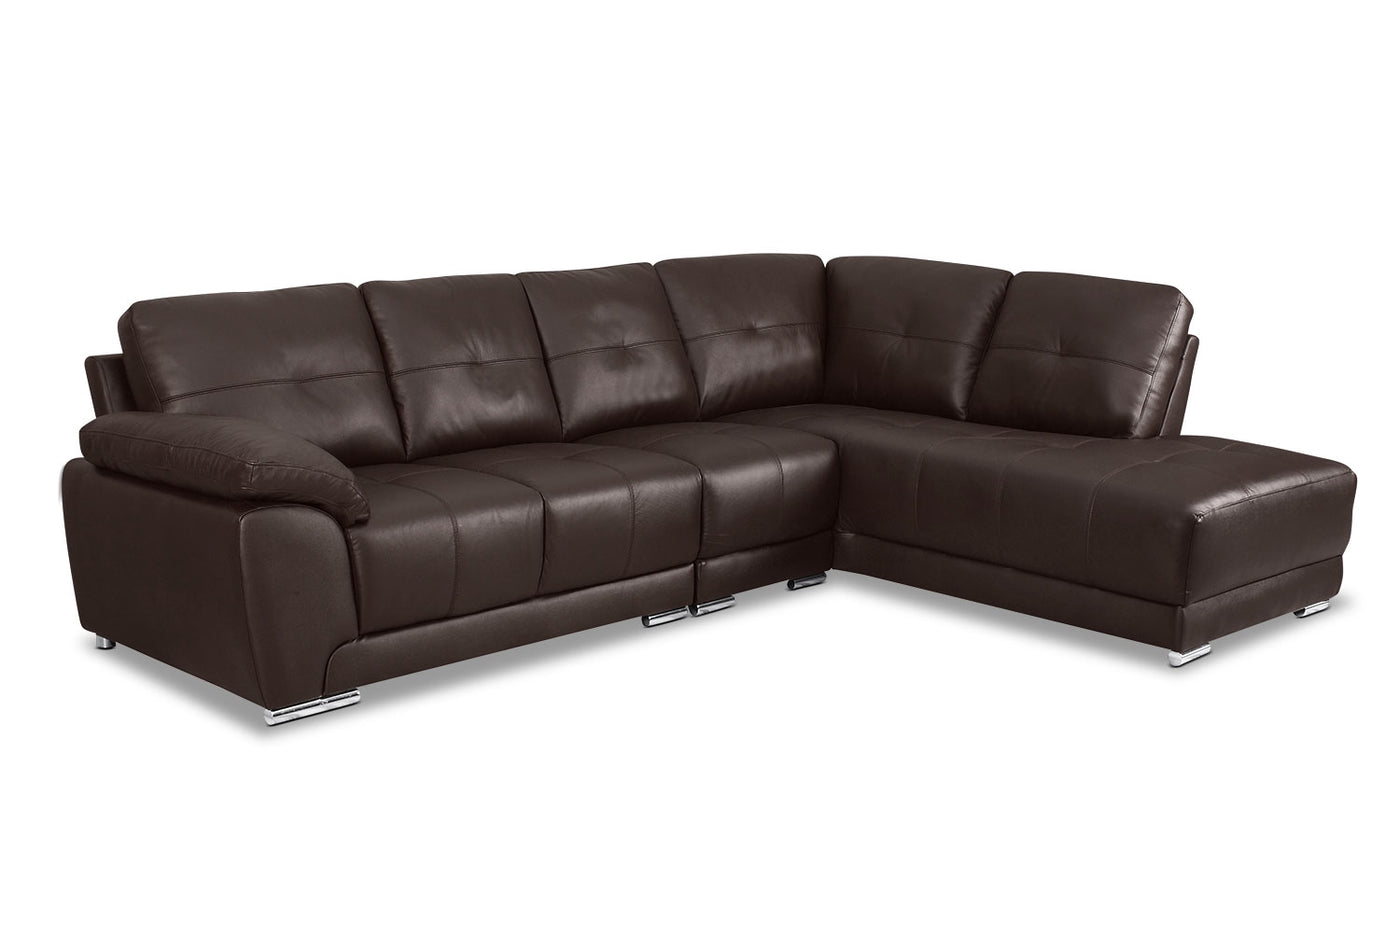 Miraculous Rylee 3 Piece Genuine Leather Right Facing Sectional Brown Ocoug Best Dining Table And Chair Ideas Images Ocougorg